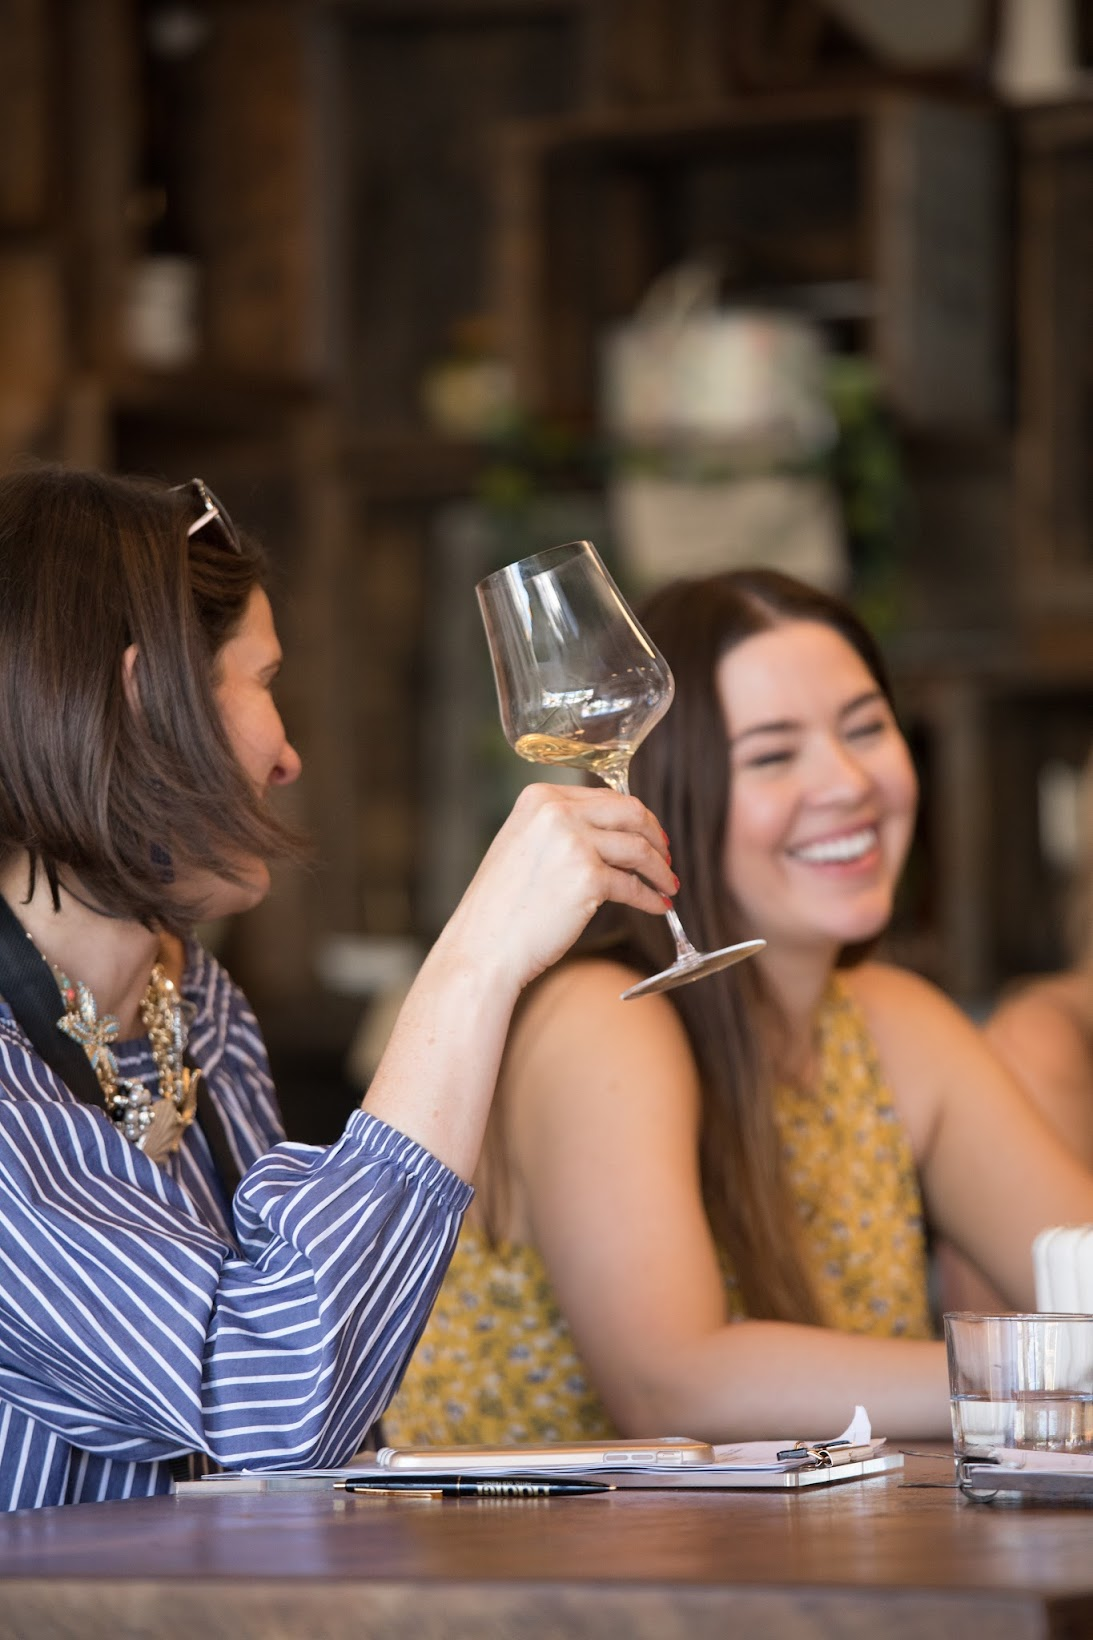 24 hours in Healdsburg, How to do 24 hours in Healdsburg, wine weekend in Healdsburg, what to do if you only have 24 hours in Healdsburg, Banshee wines